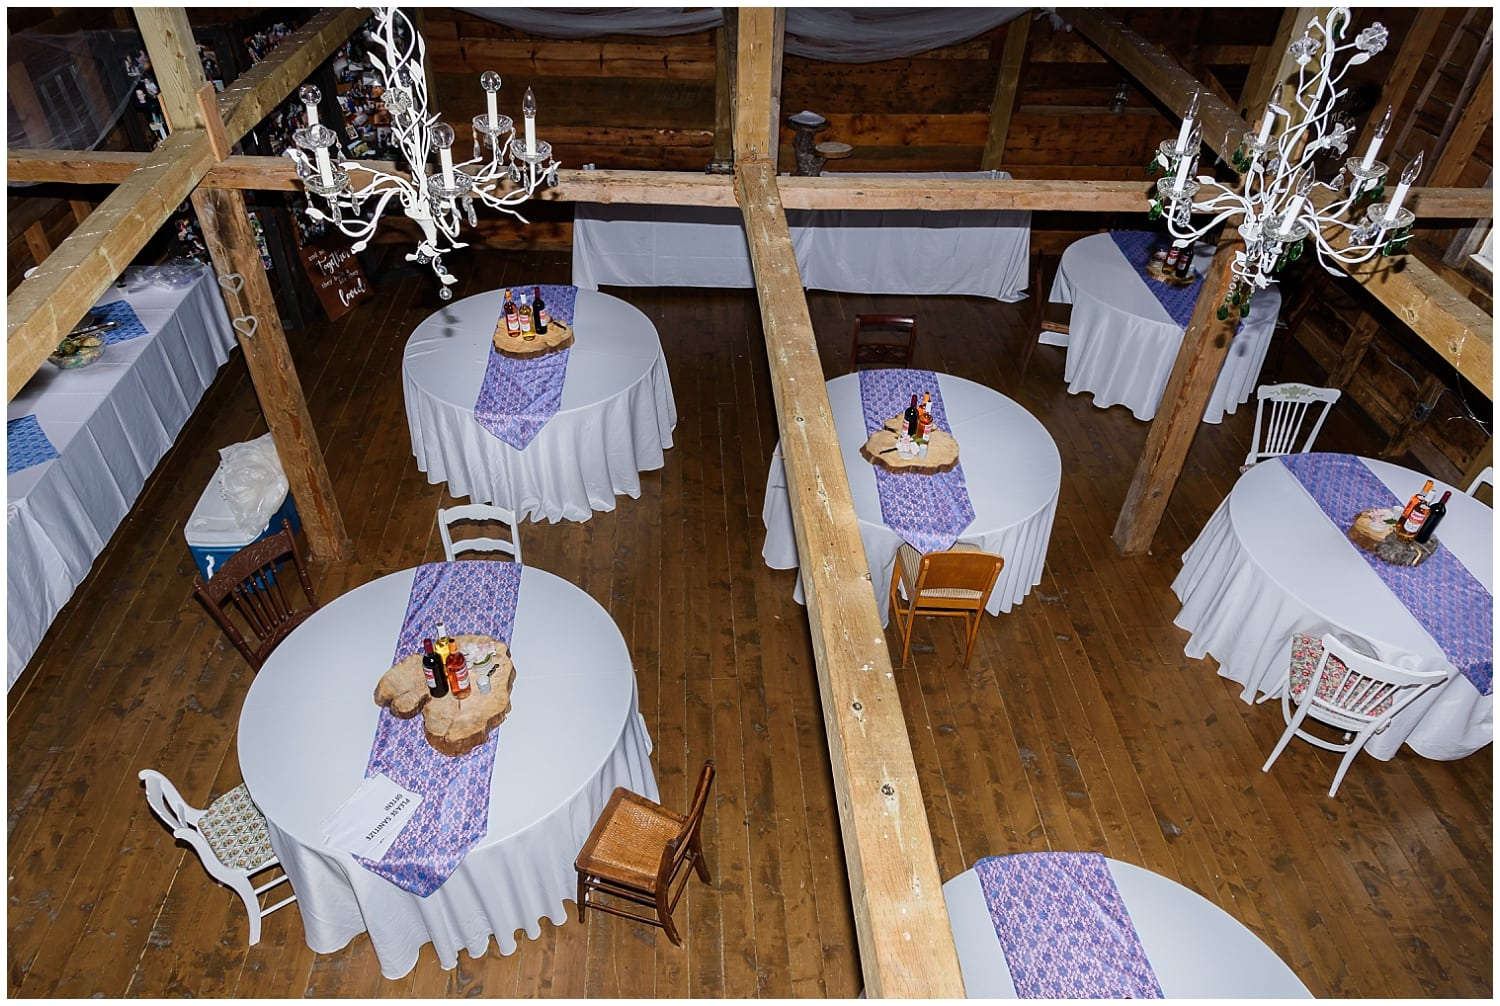 A rustic wedding reception set up for a wedding at the Barn at Sadie Belle Farm in Hantsport NS.